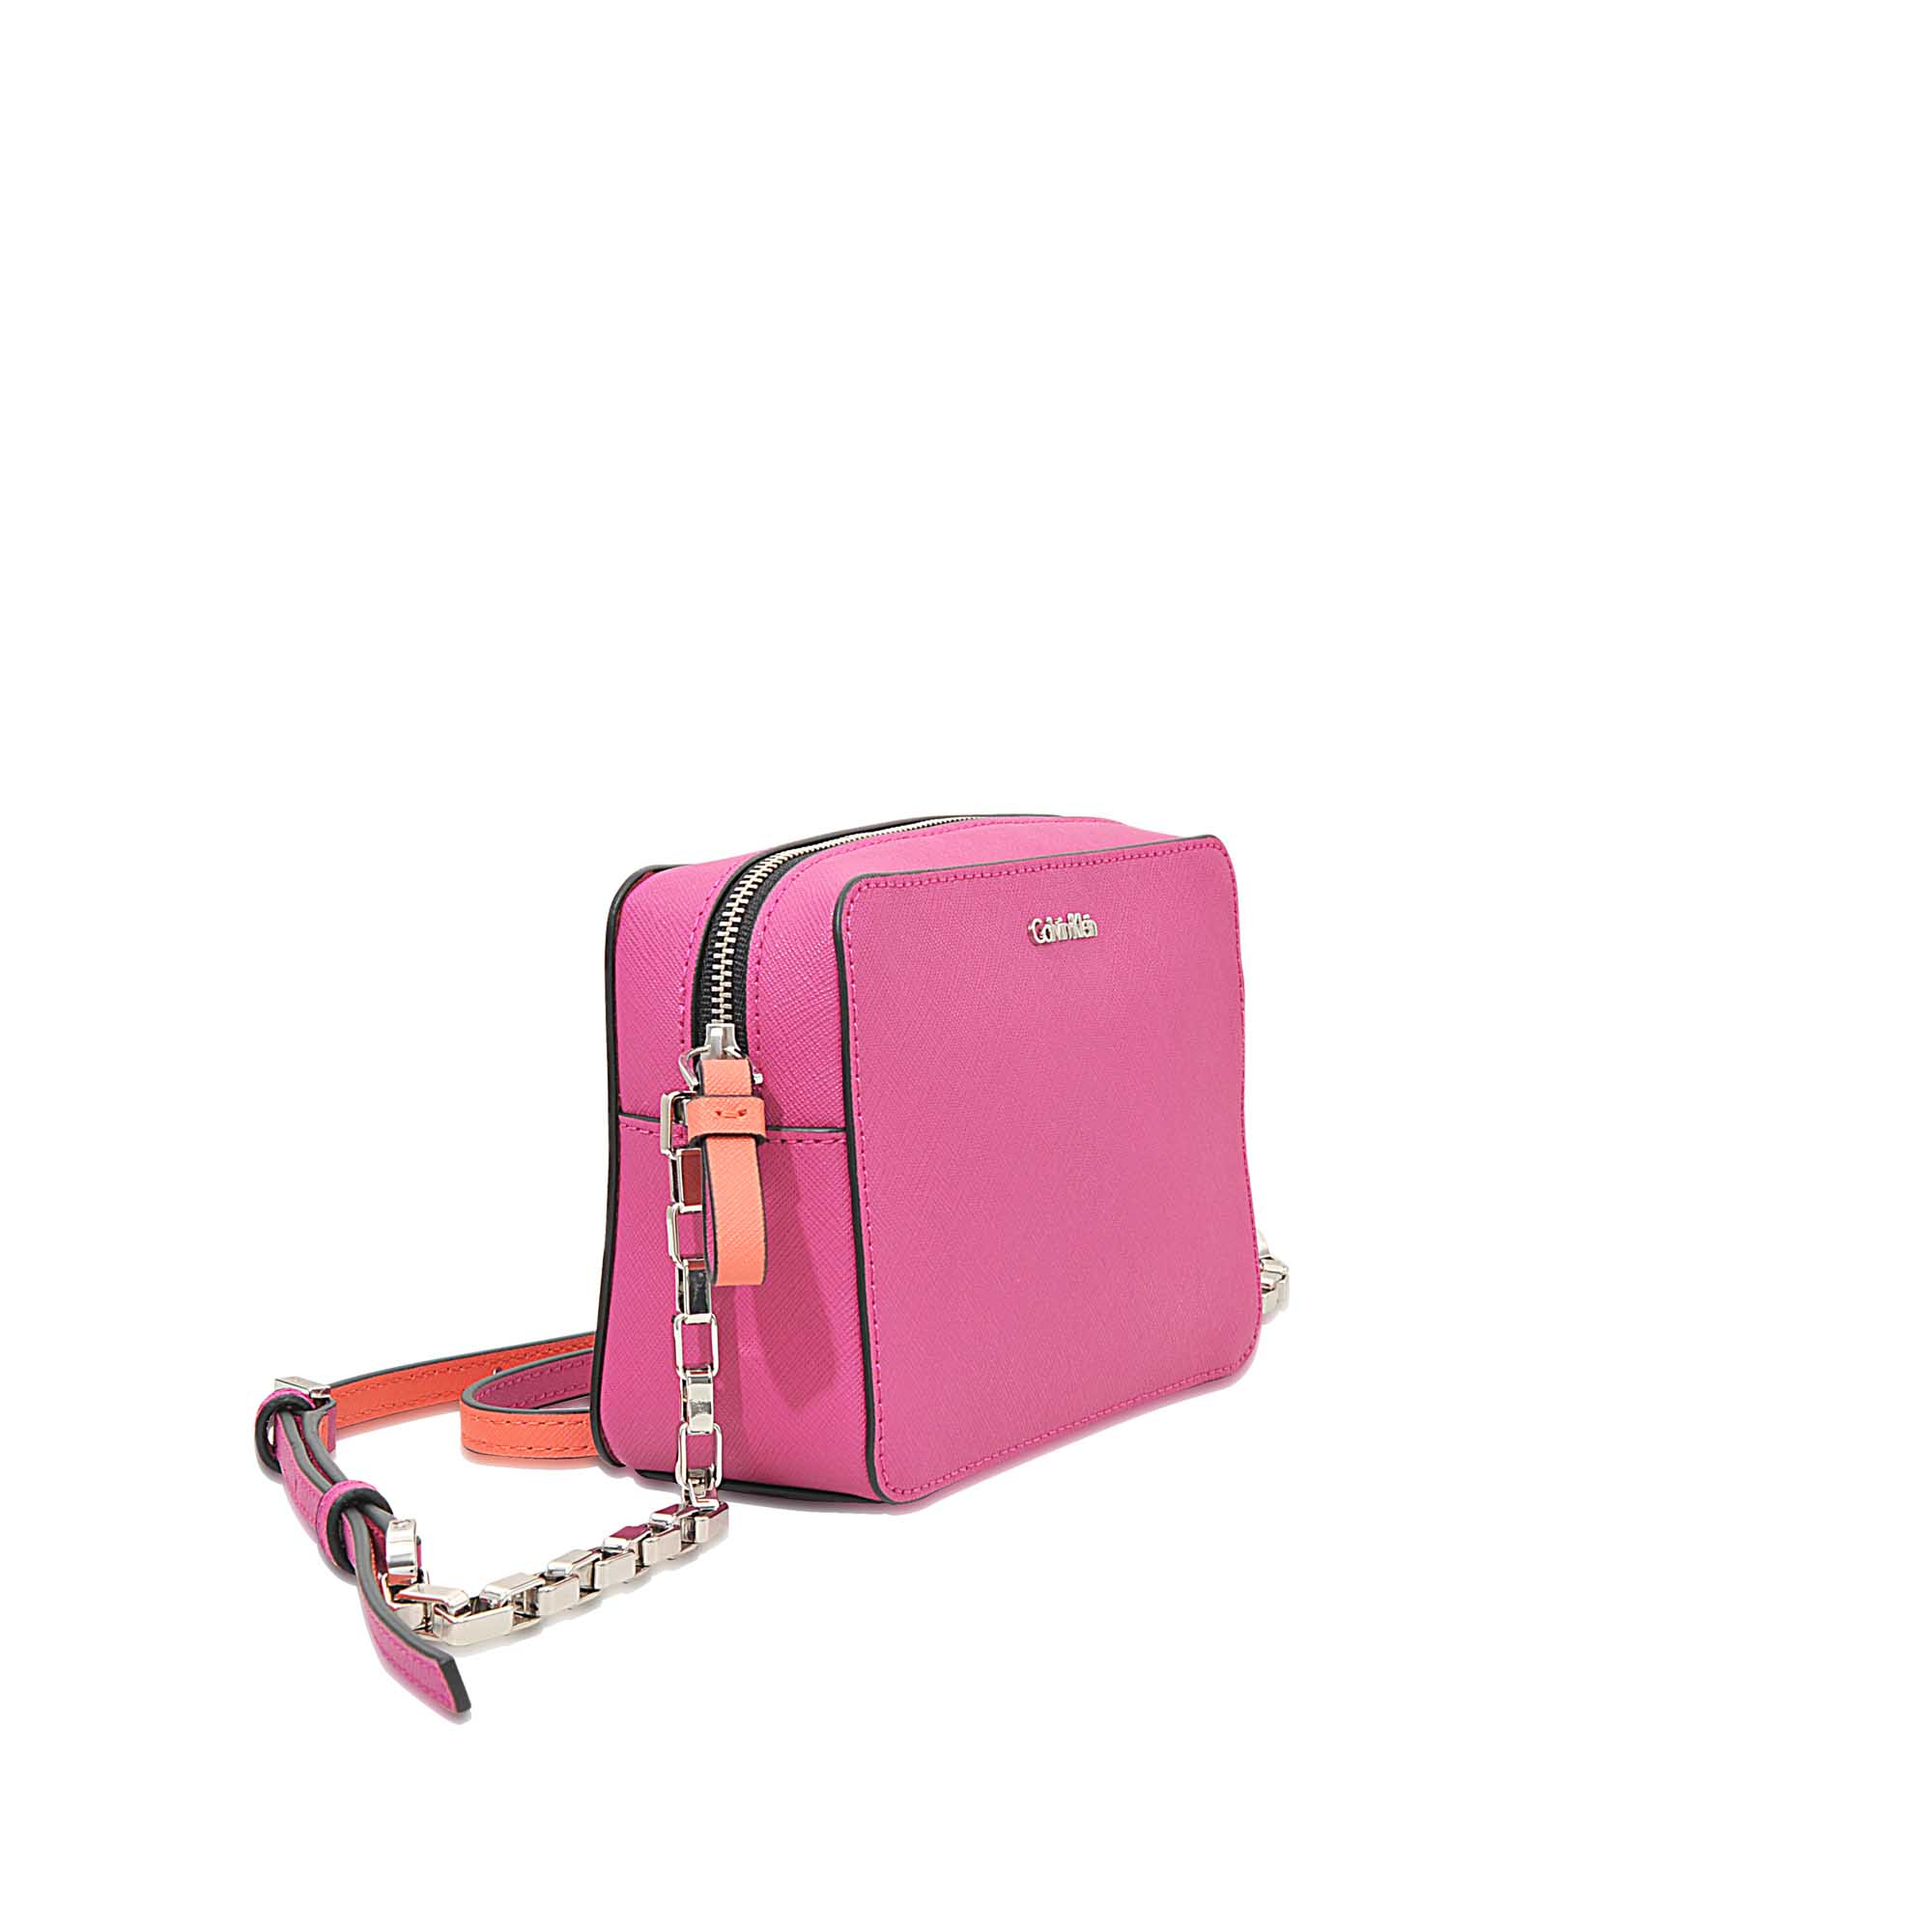 Pink Bag Lyst Crossbody Klein Calvin Sofie Mini In 81wAFqax